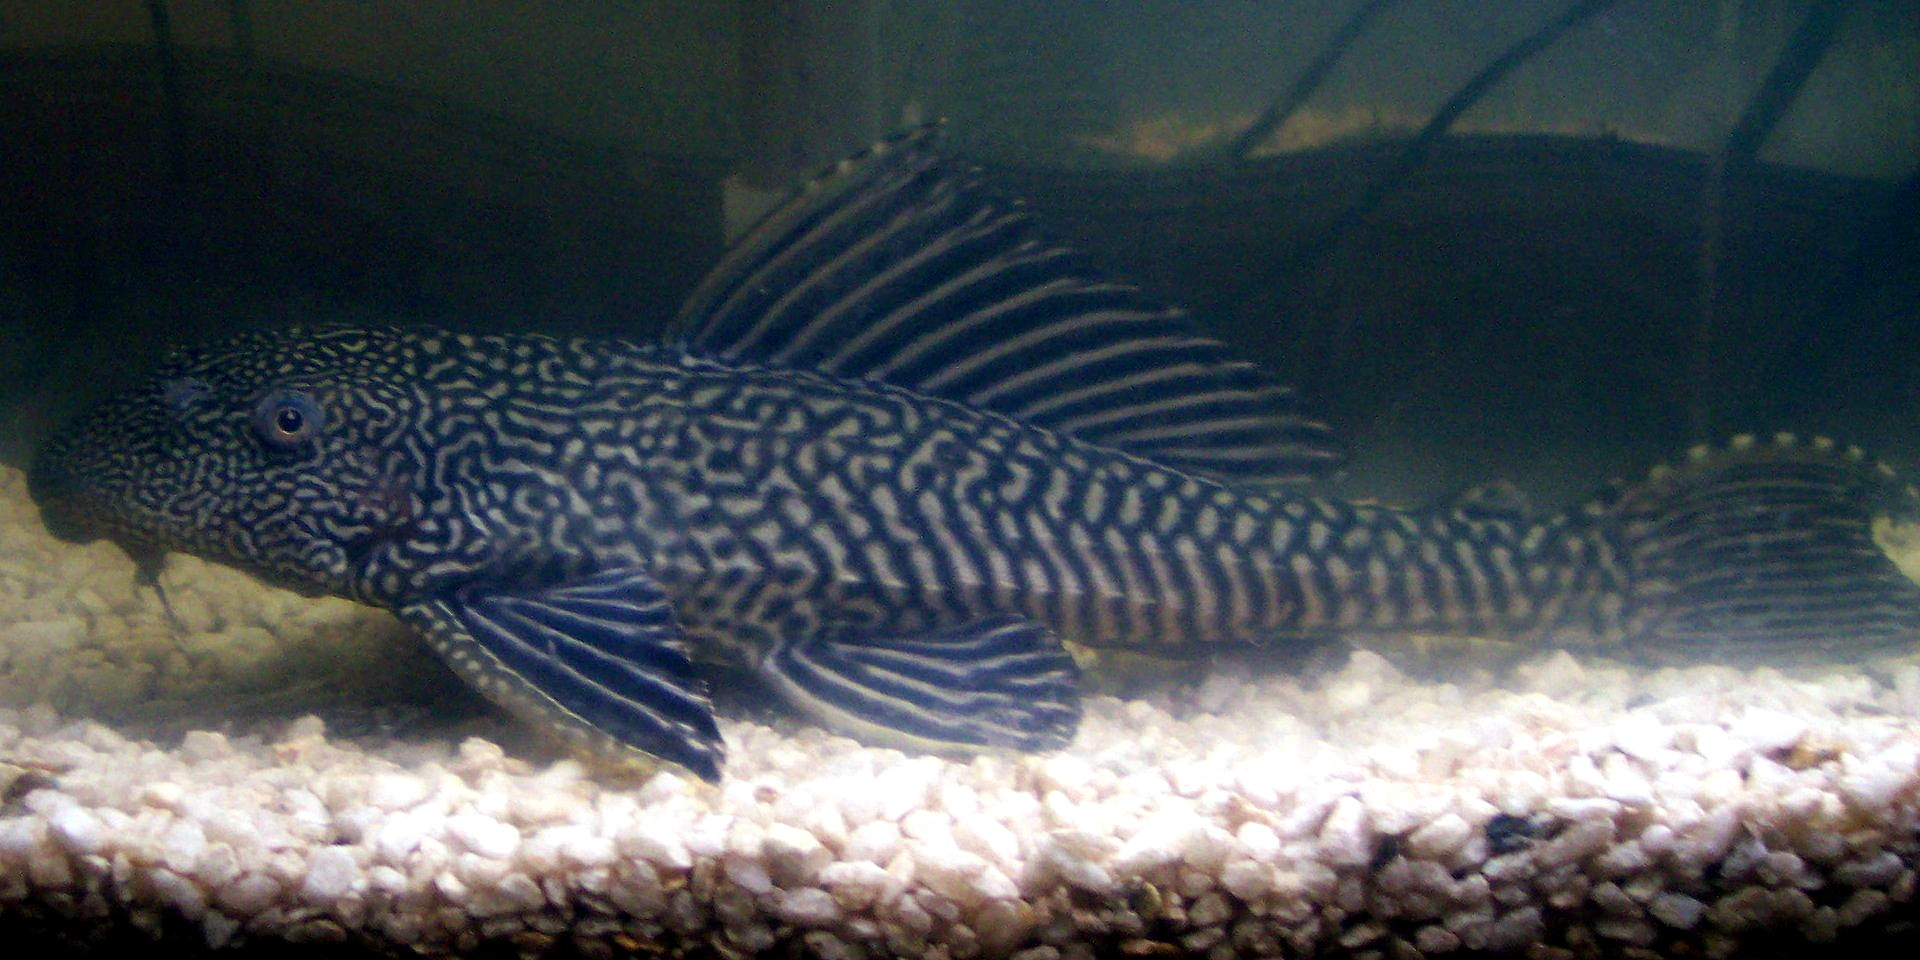 4 Commonly Sold Plecos...